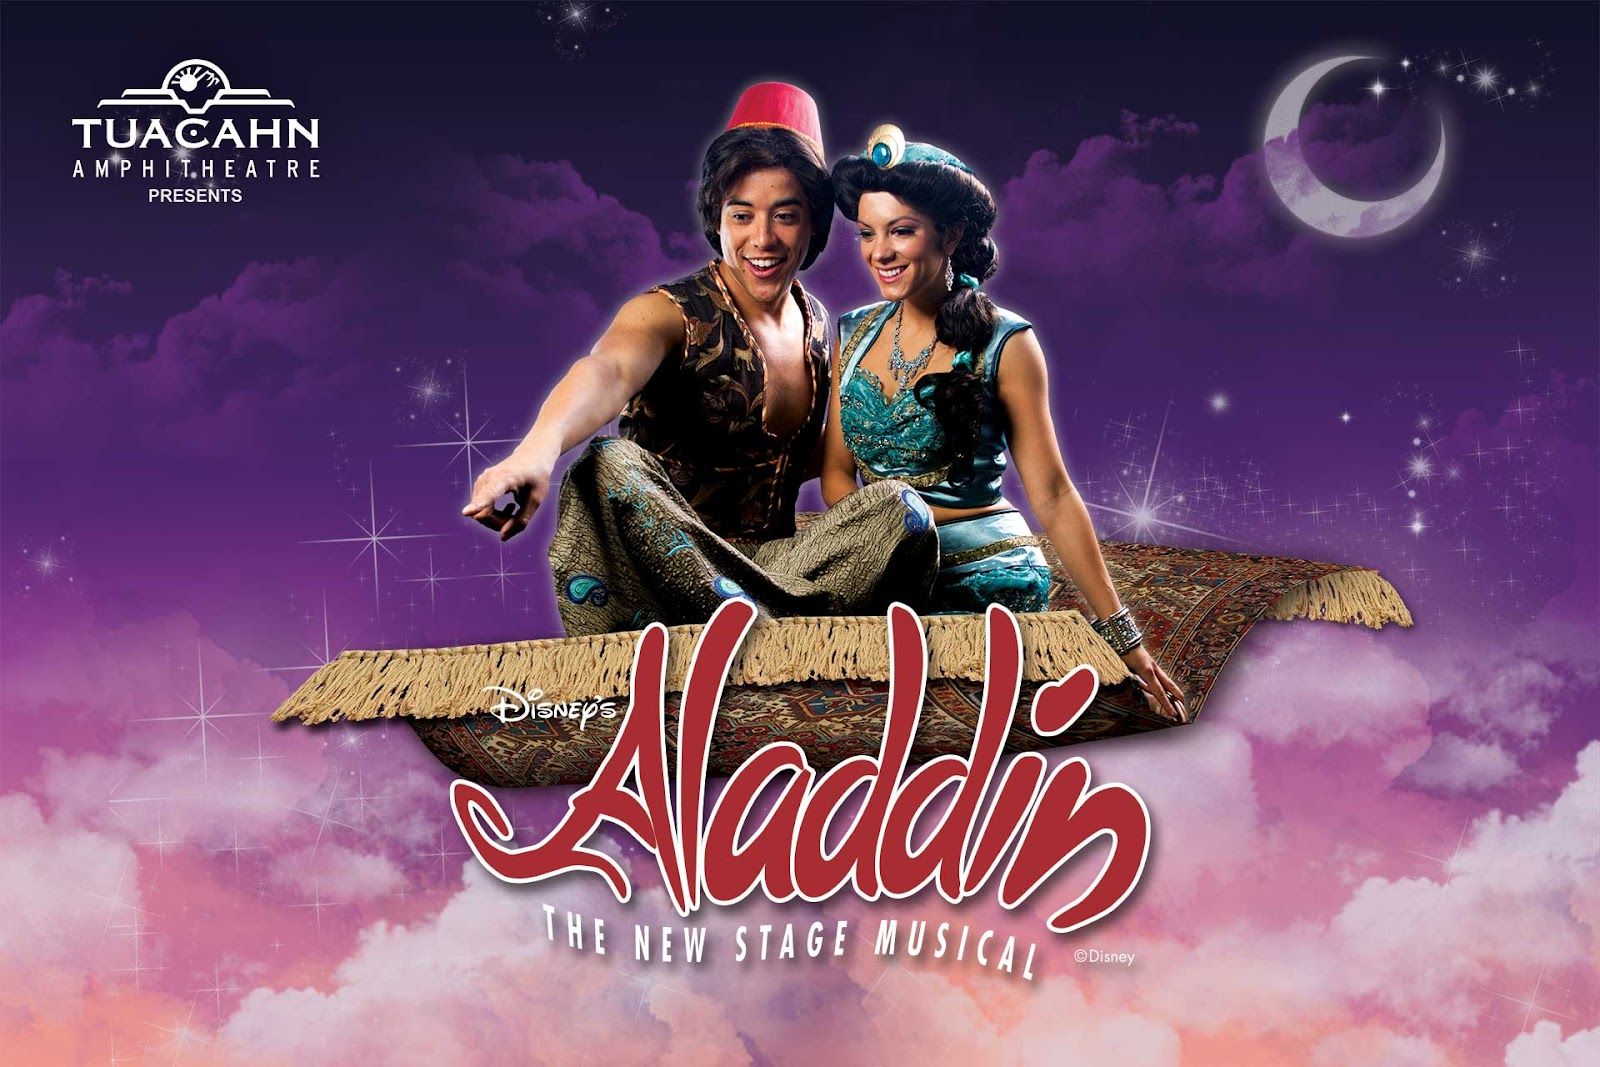 Musical Aladdin Fliegender Teppich Aladdin Musical New Picture Of Tuacahn 39s Aladdin And Jasmine